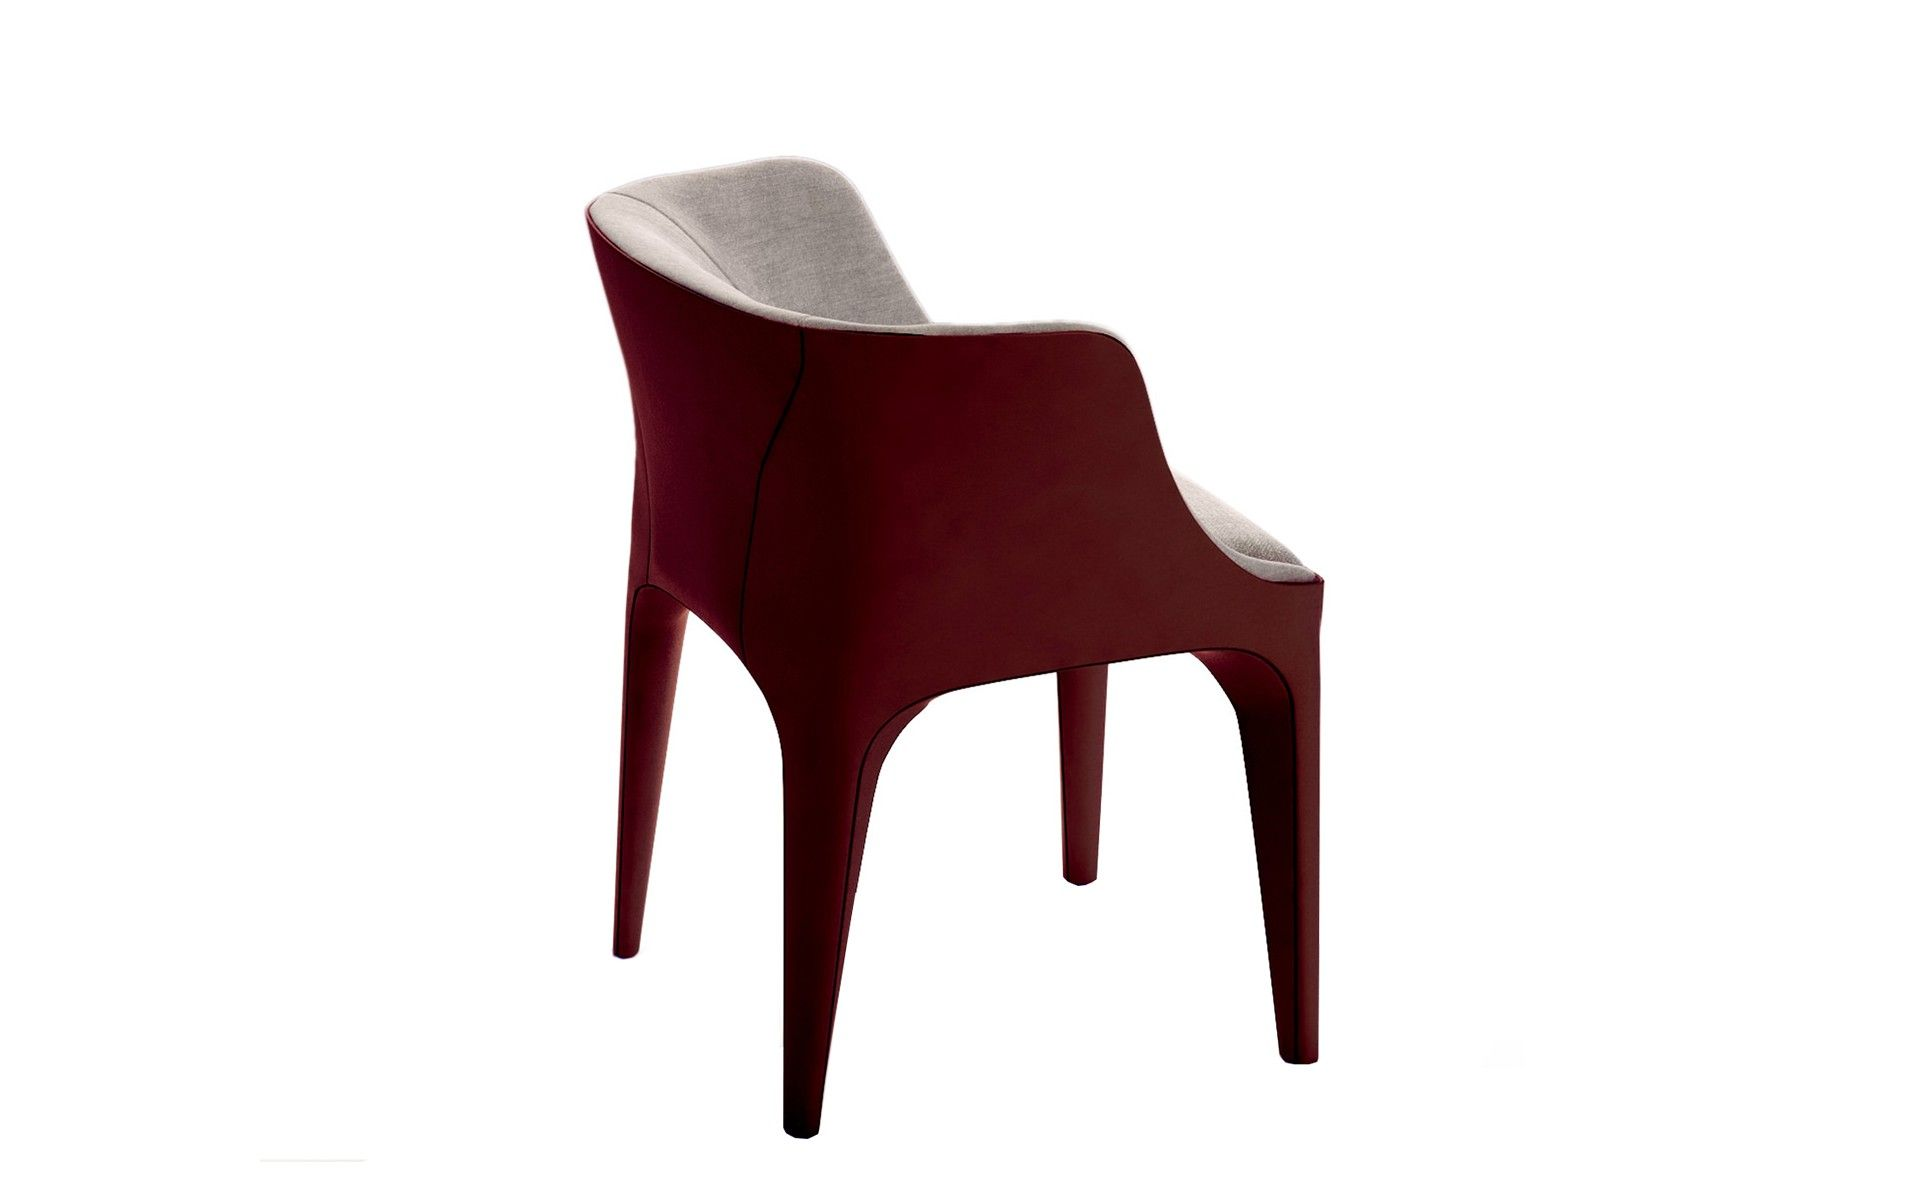 13 Giorgetti Diana Chair Designer Carlo Colombo Jpg Chair Design Armchair